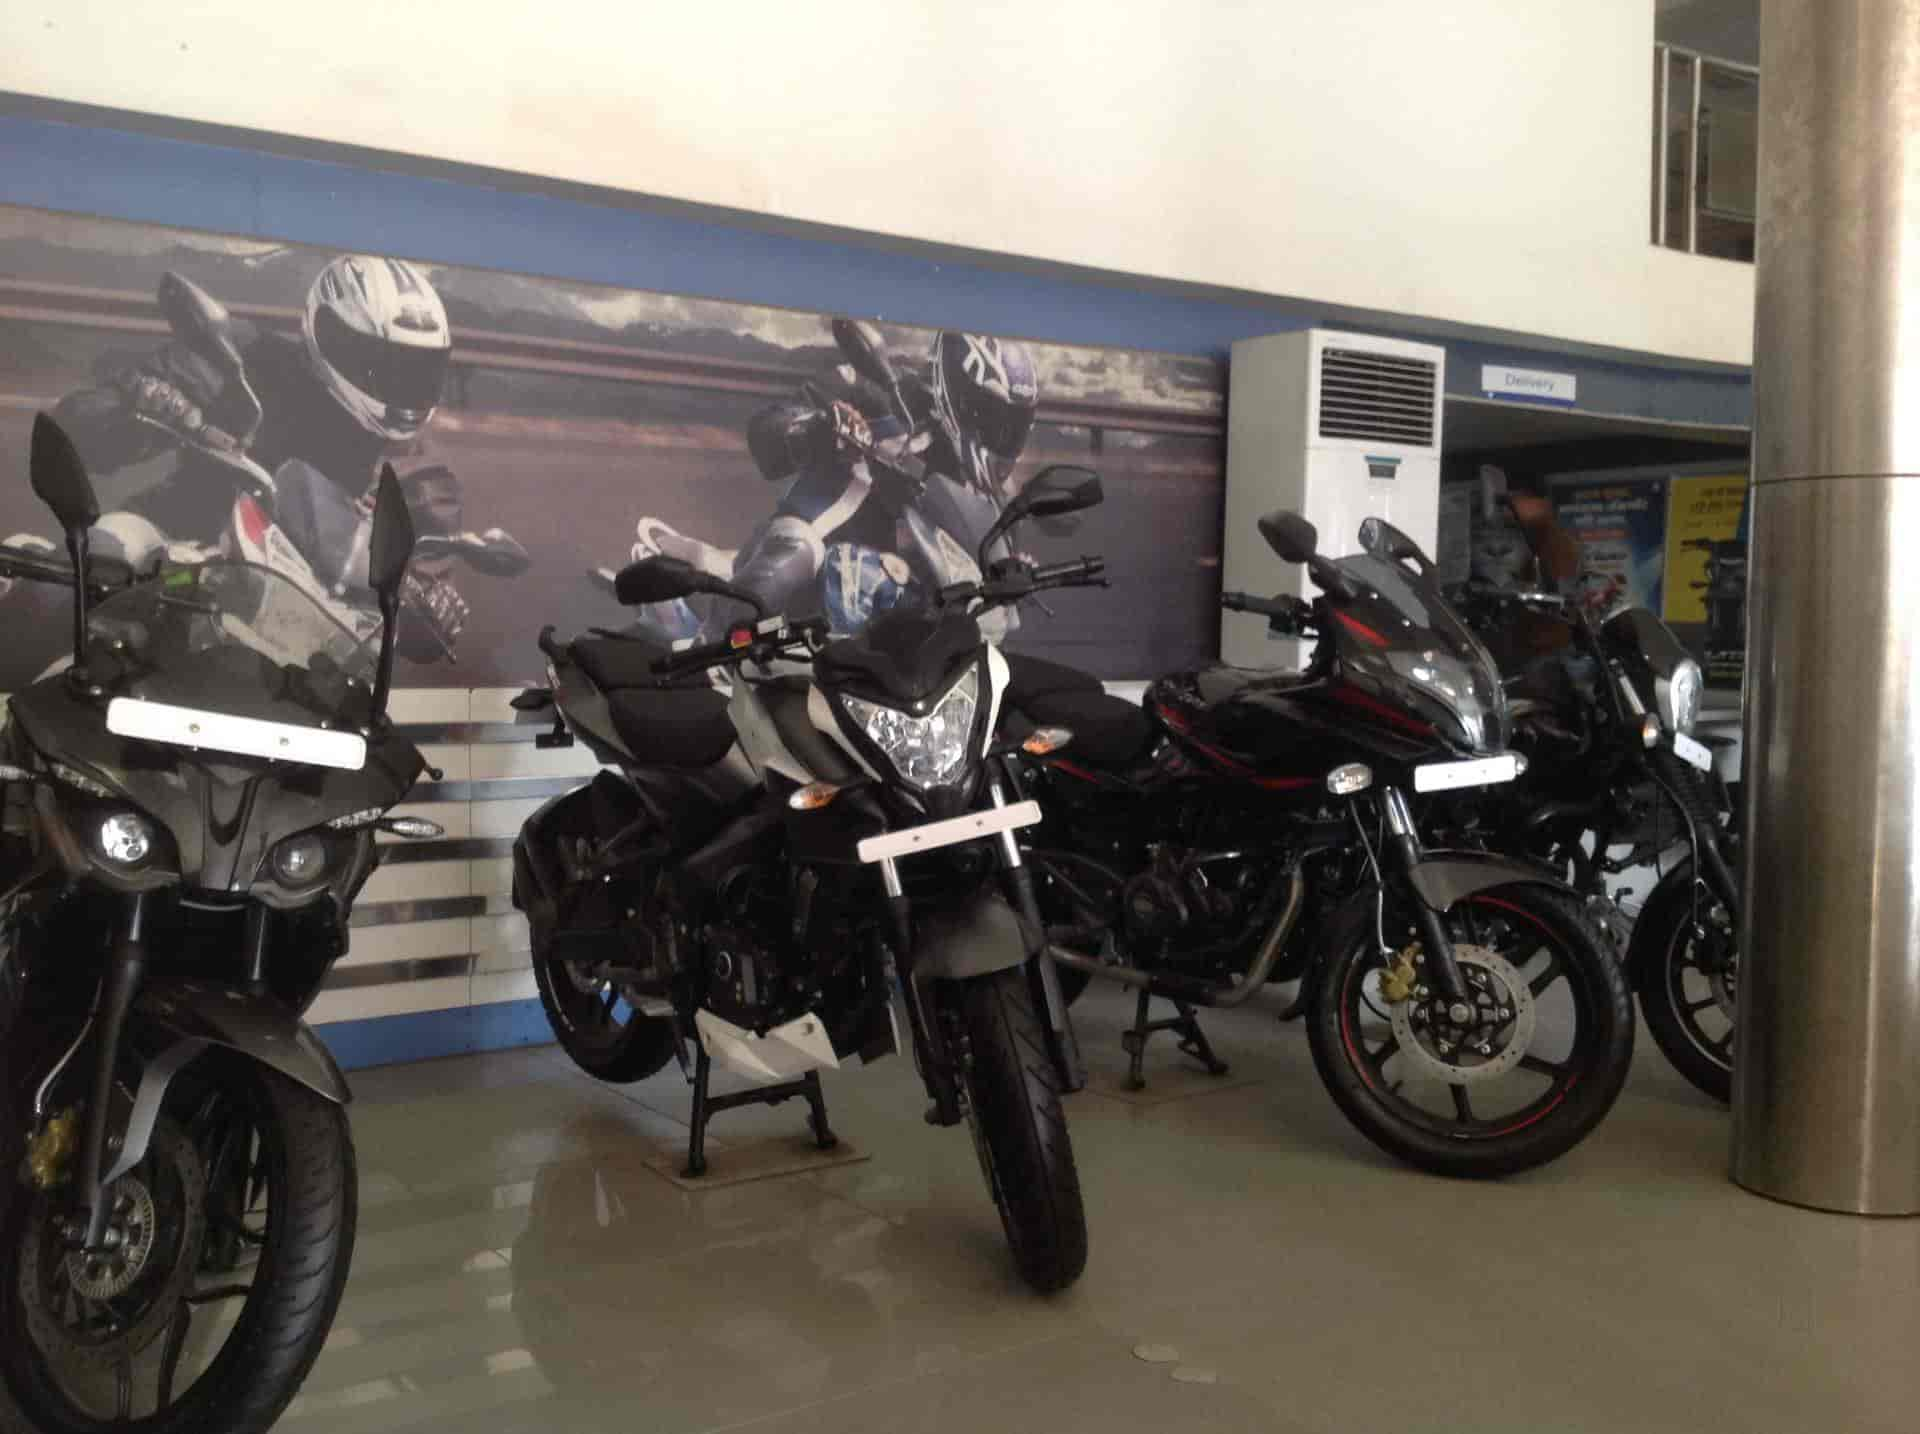 Patni Automobiles, Sadar Bazar - Motorcycle Dealers in Nagpur - Justdial